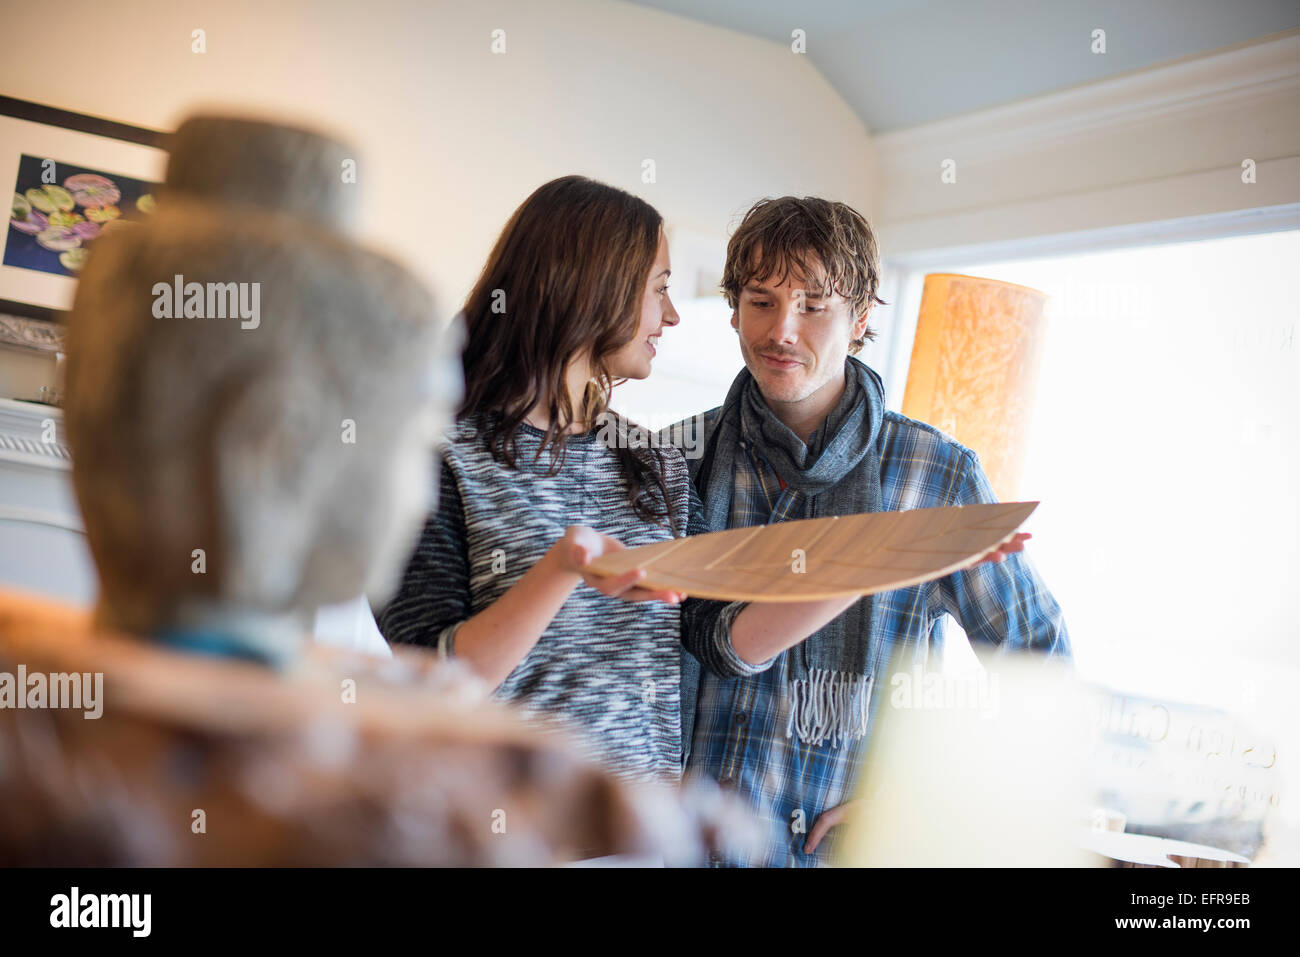 Smiling couple standing in a living room, woman holding a wooden tray. - Stock Image